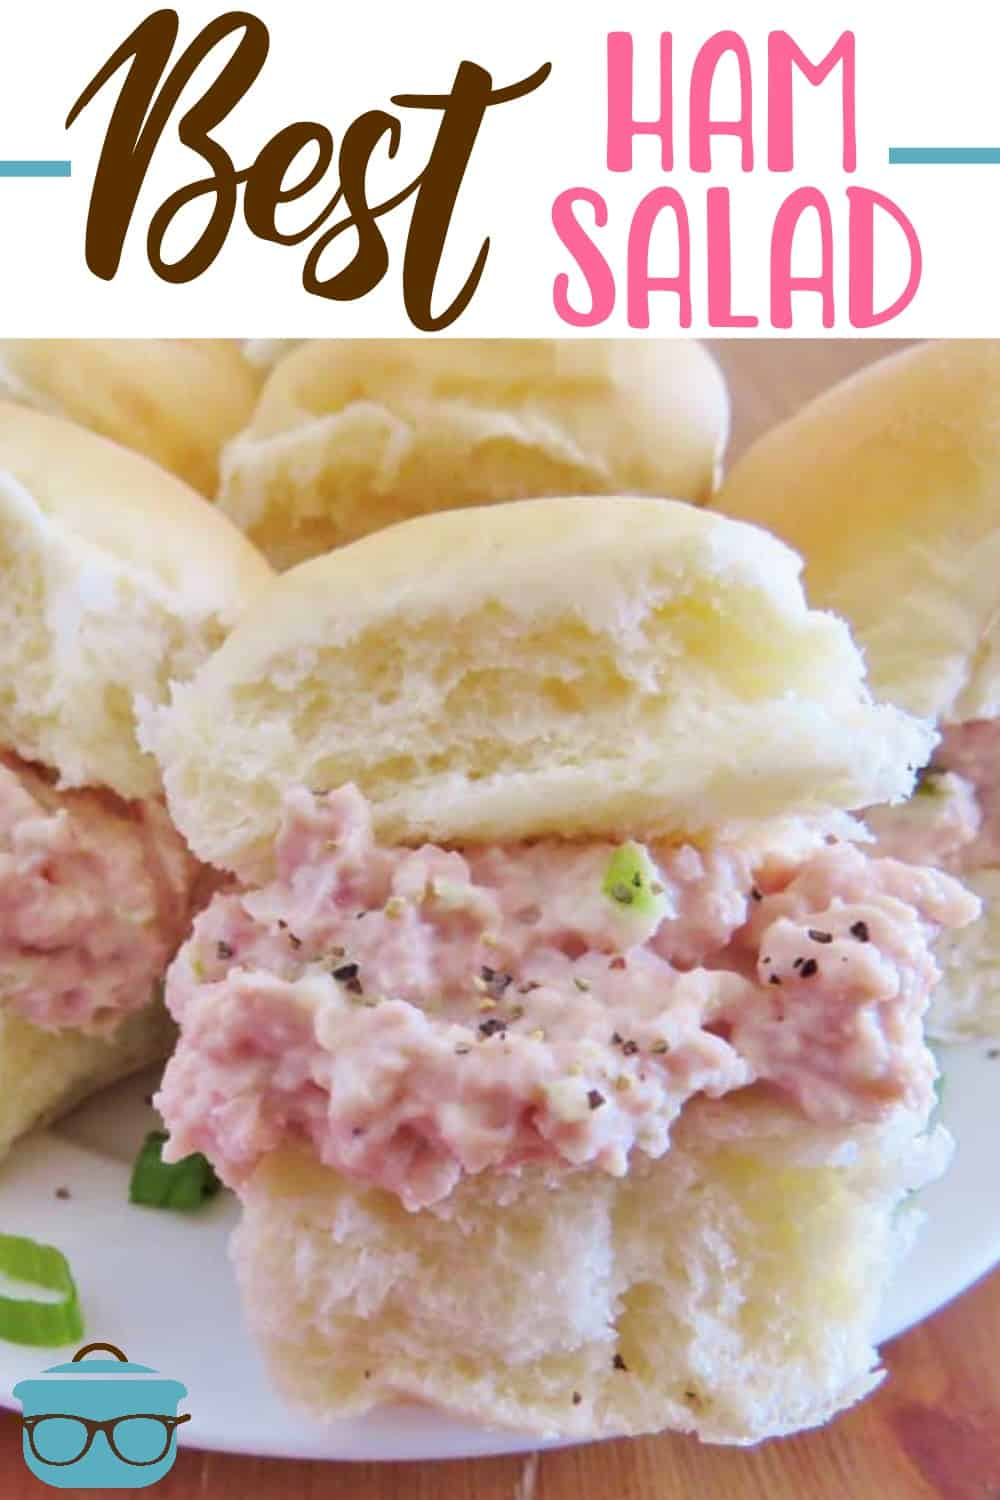 The best ham salad recipe only requires a food processor, mayonnaise, celery, onion and perfectly combined seasonings! This is the most requested ham salad recipe!